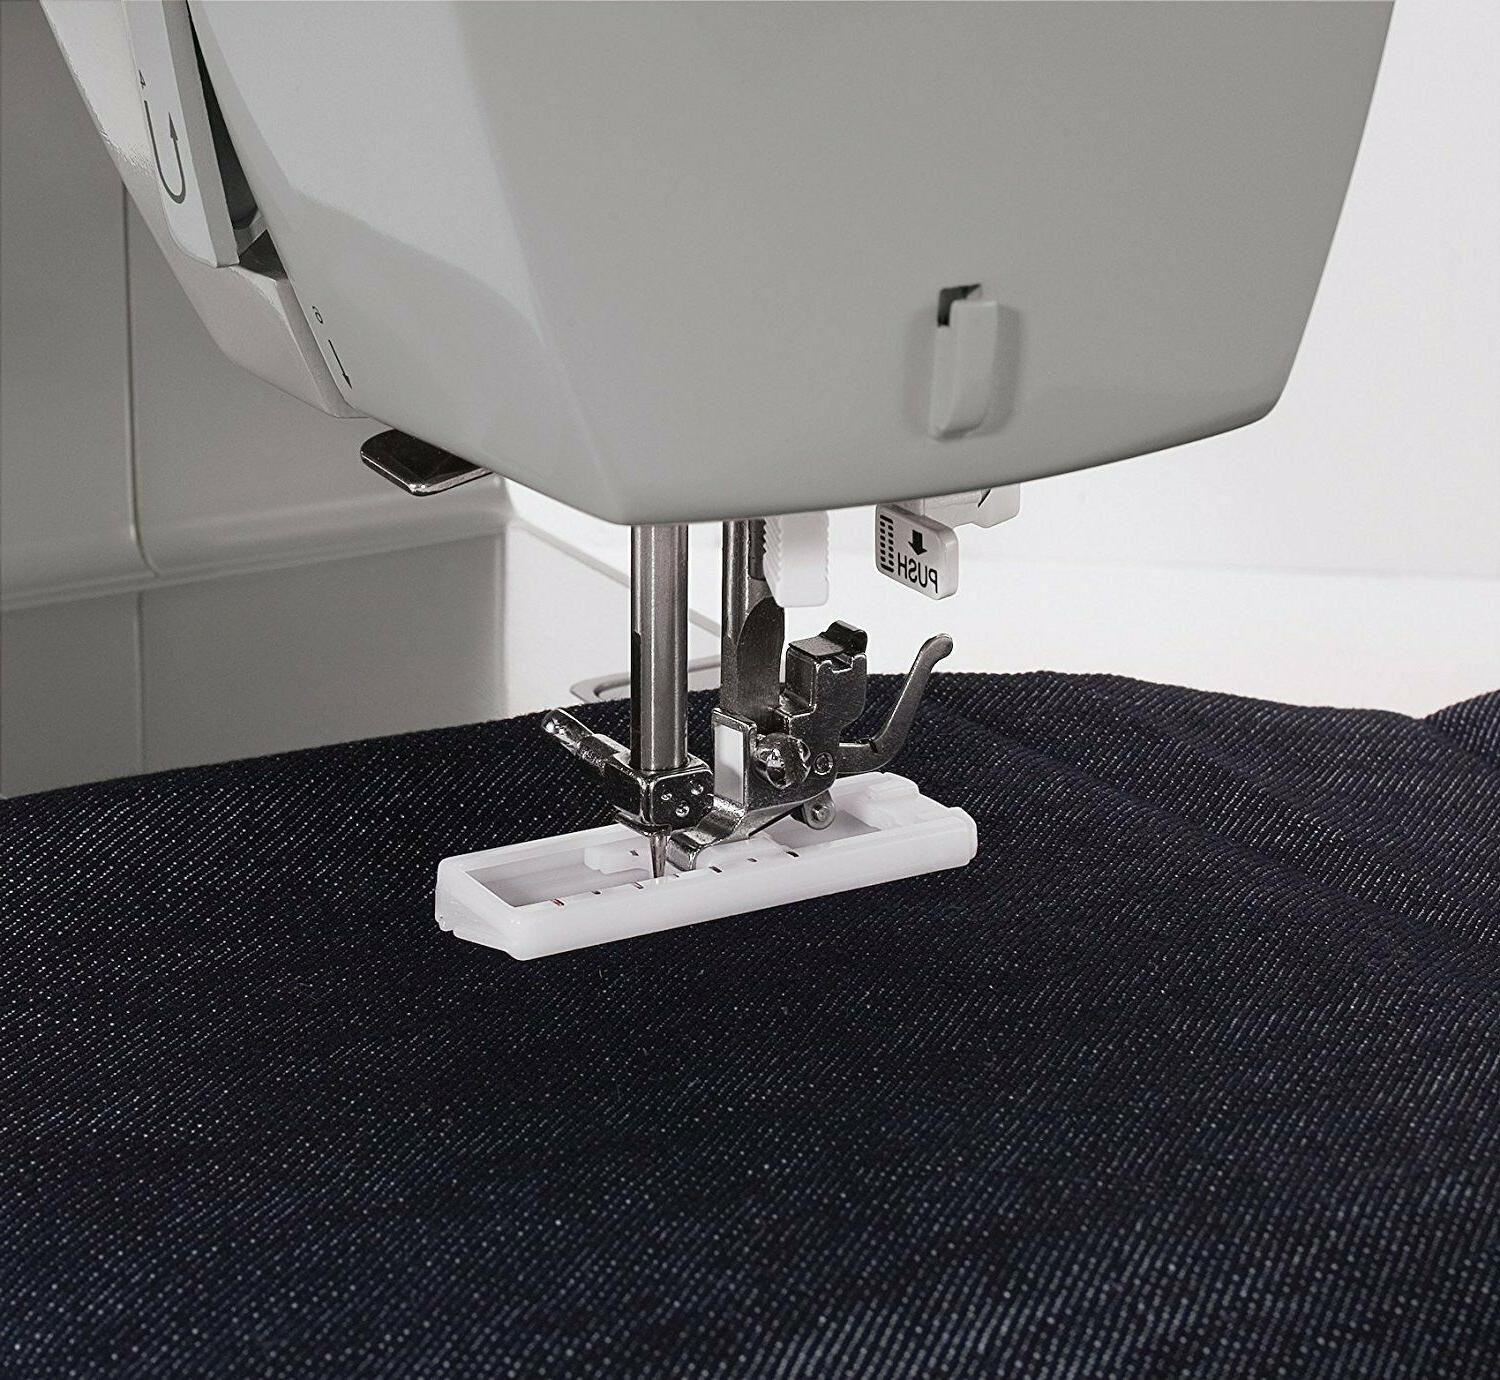 Singer Machine Portable Embroidery Craft